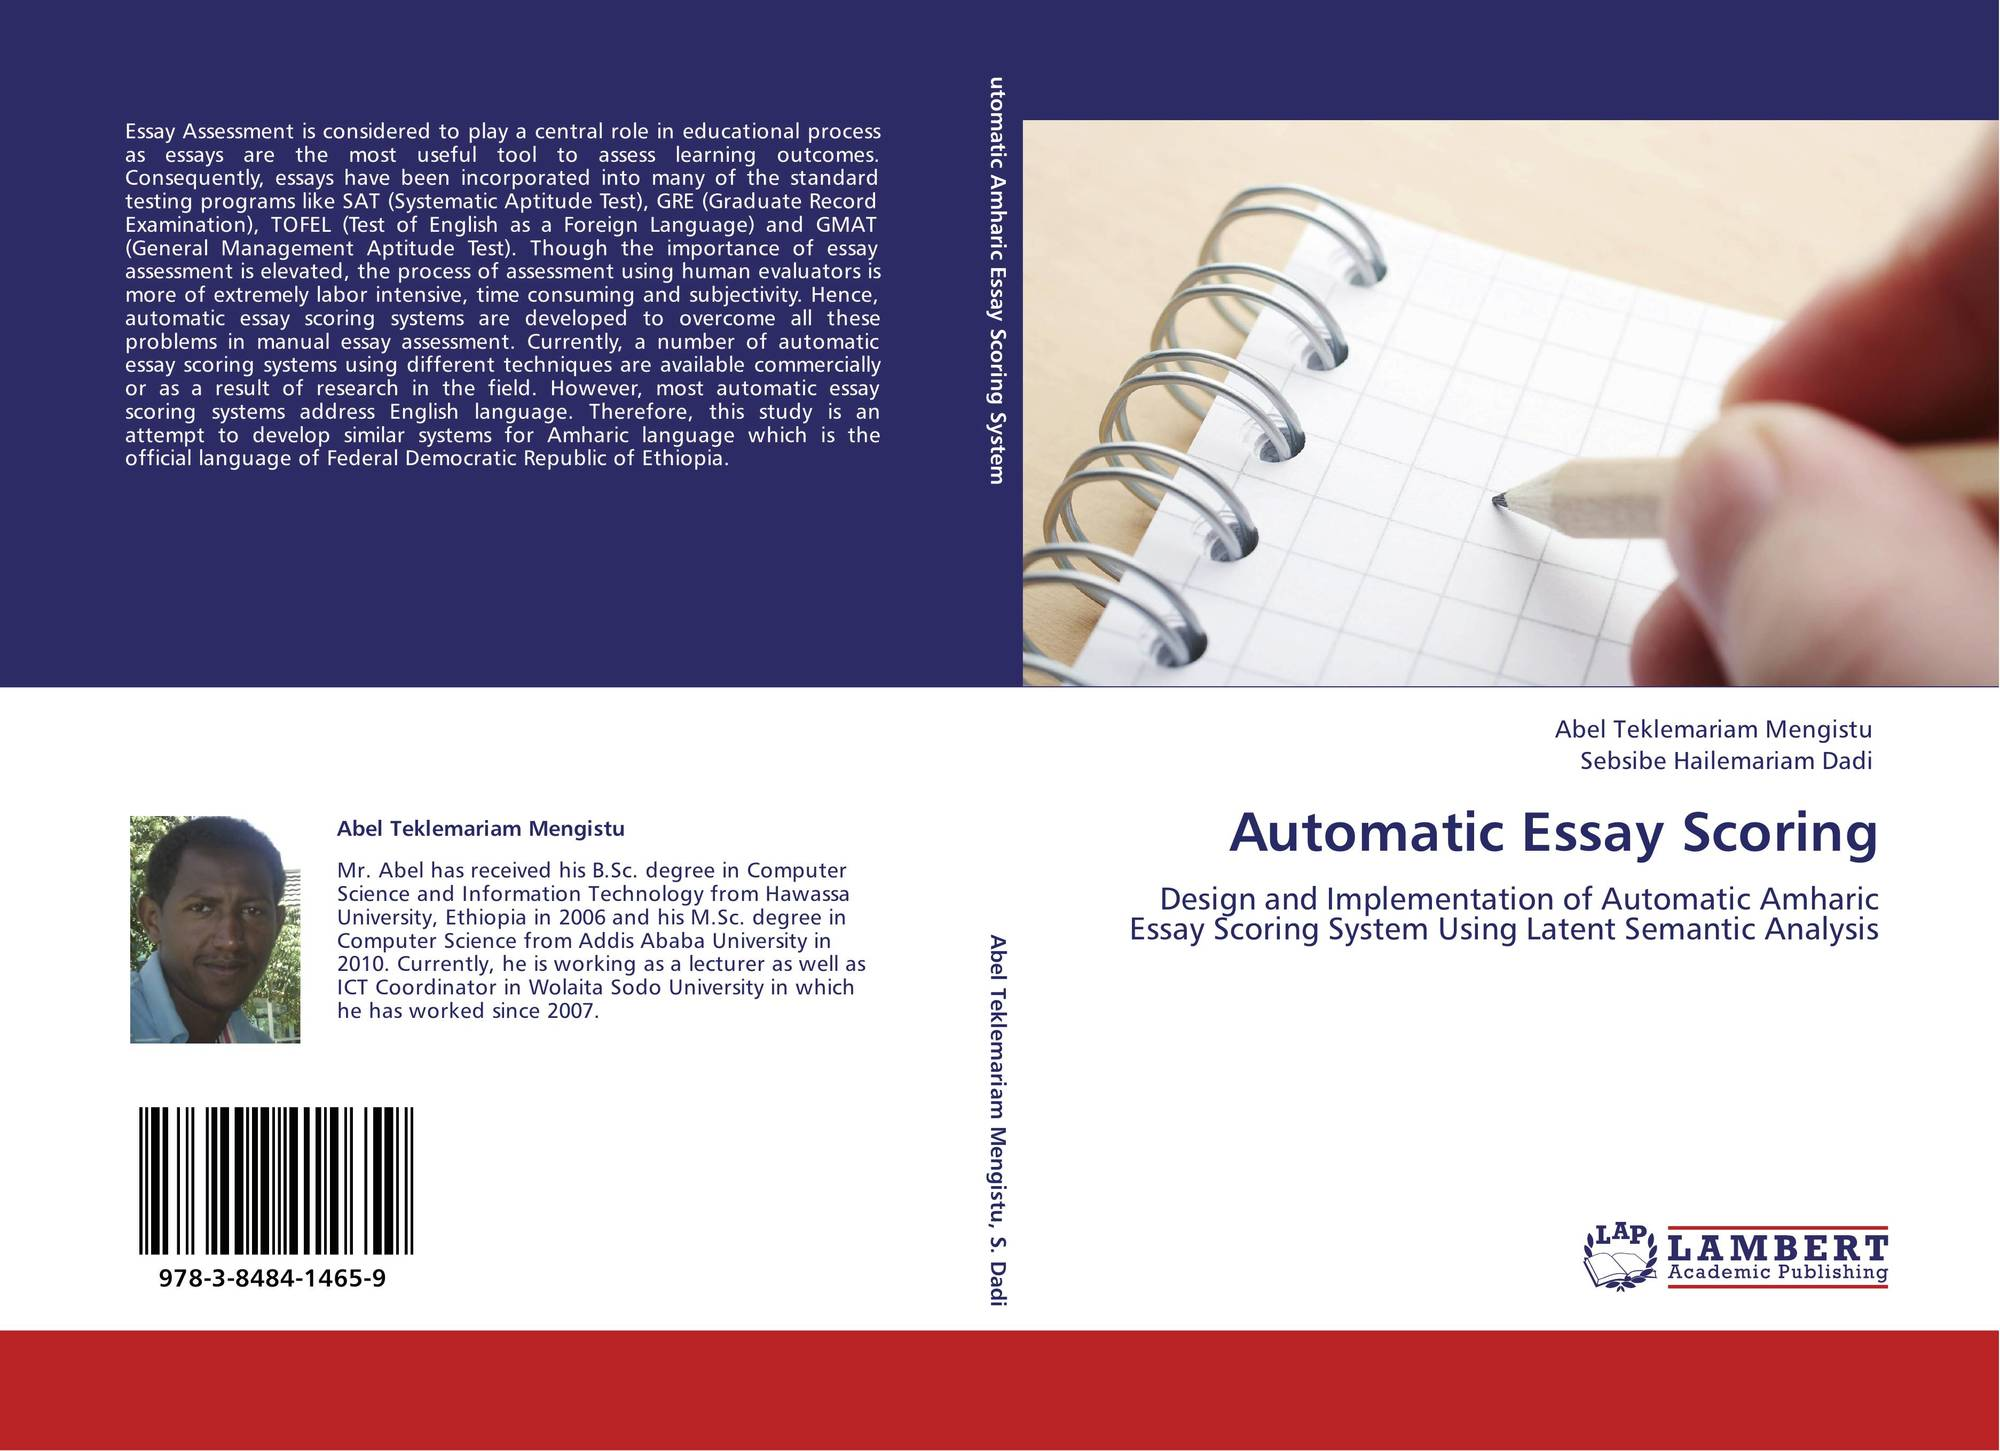 automatic essay scoring Considering misconceptions in automatic essay scoring with a-test - amrita test evaluation and scoring tool prema nedungadi1,2(&), jyothi l2, and raghu raman1.